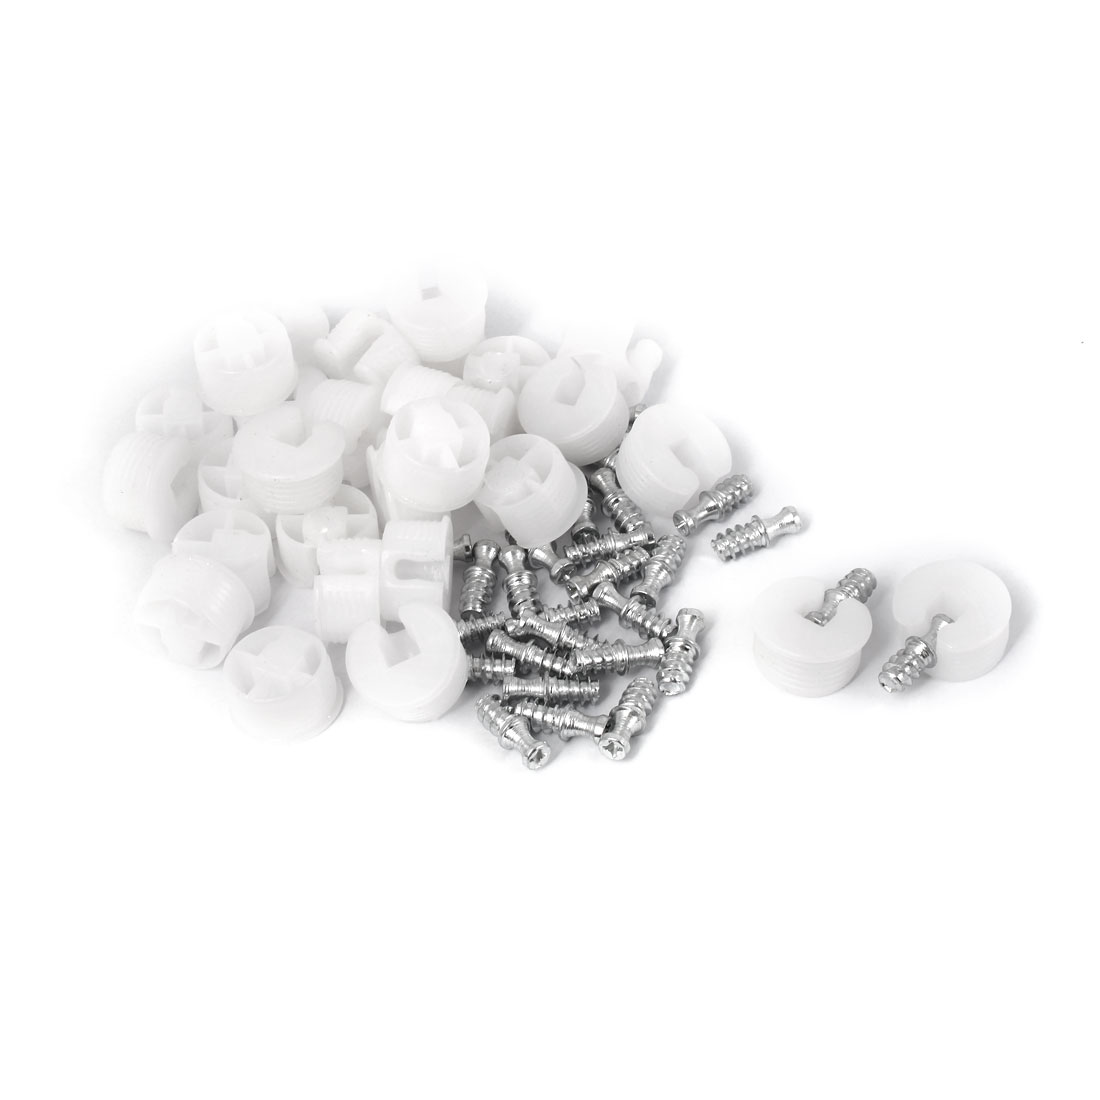 U Shape Plastic Screw in Shelf Support Pins Peg Supporter White 30 Pcs